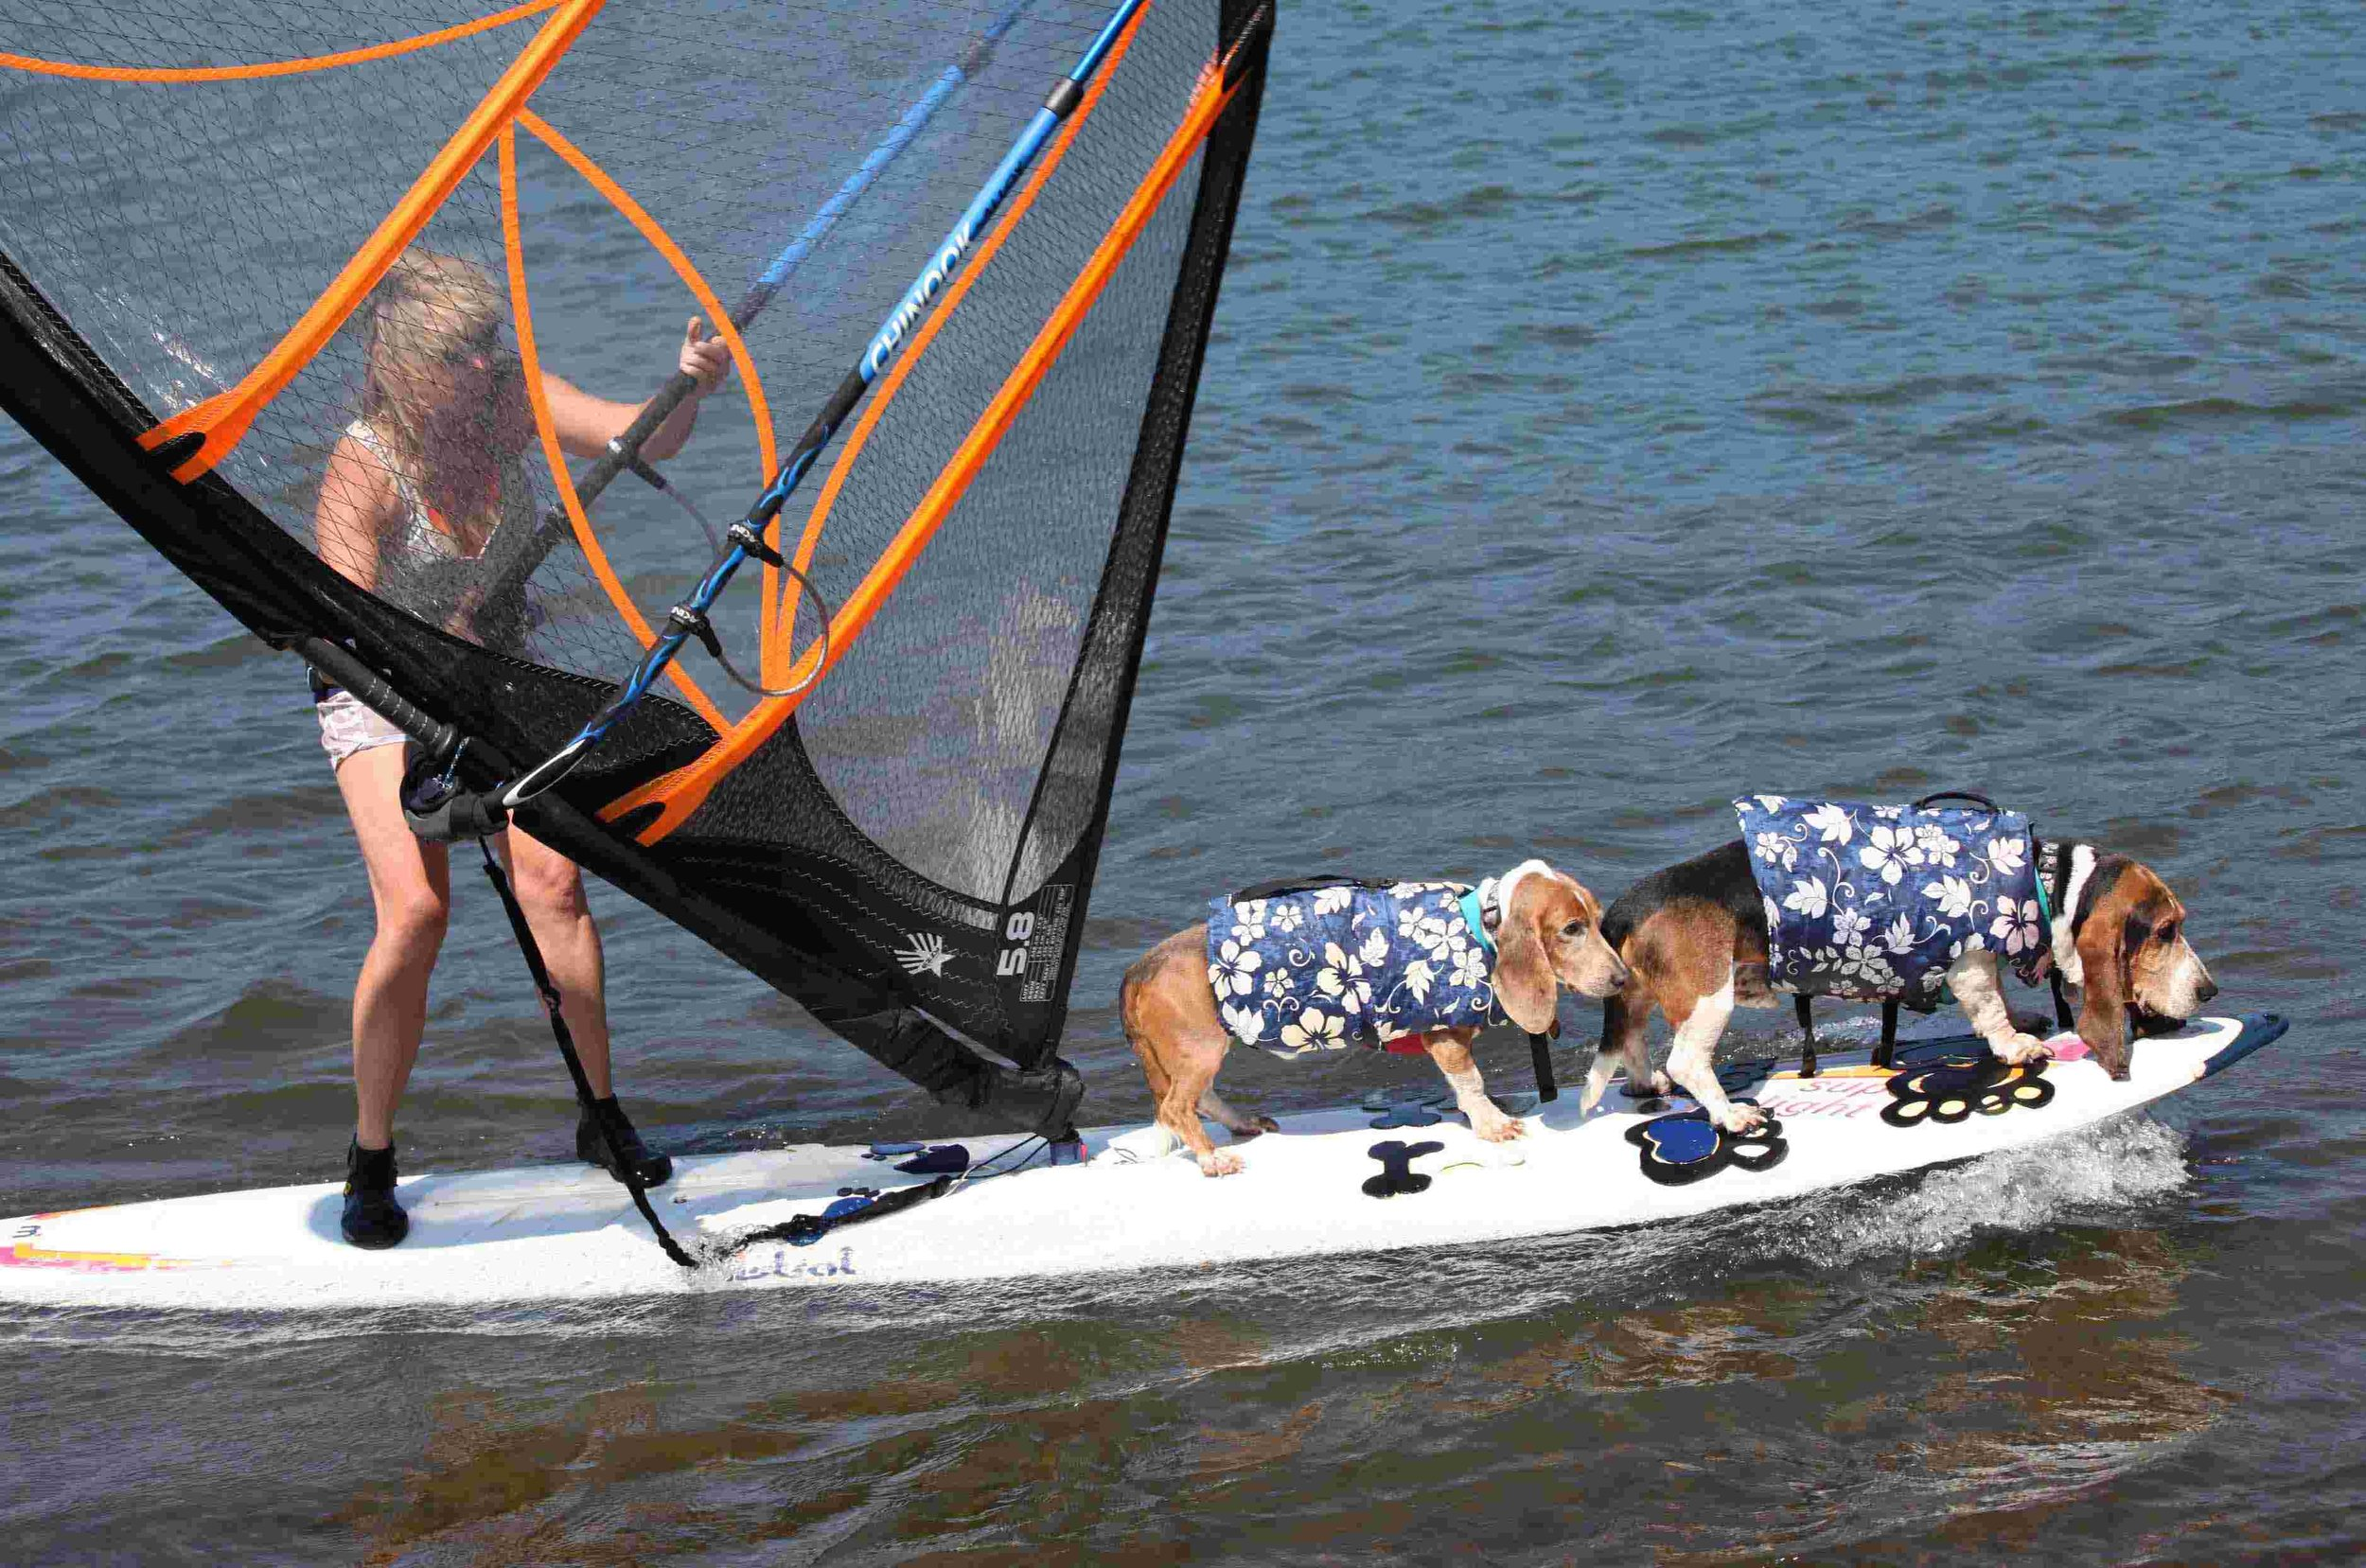 """My dogs, Dude and Elvis and my person, (She,) actual name Barb Ayers, windsurfing the Columbia River. This is a """"2 dog jibe"""" - a double dog downwind turn on an old school windsurfing longboard. In this photo, Dude still had eyes. Photo: (c) Barb Ayers, DogDiary.org"""